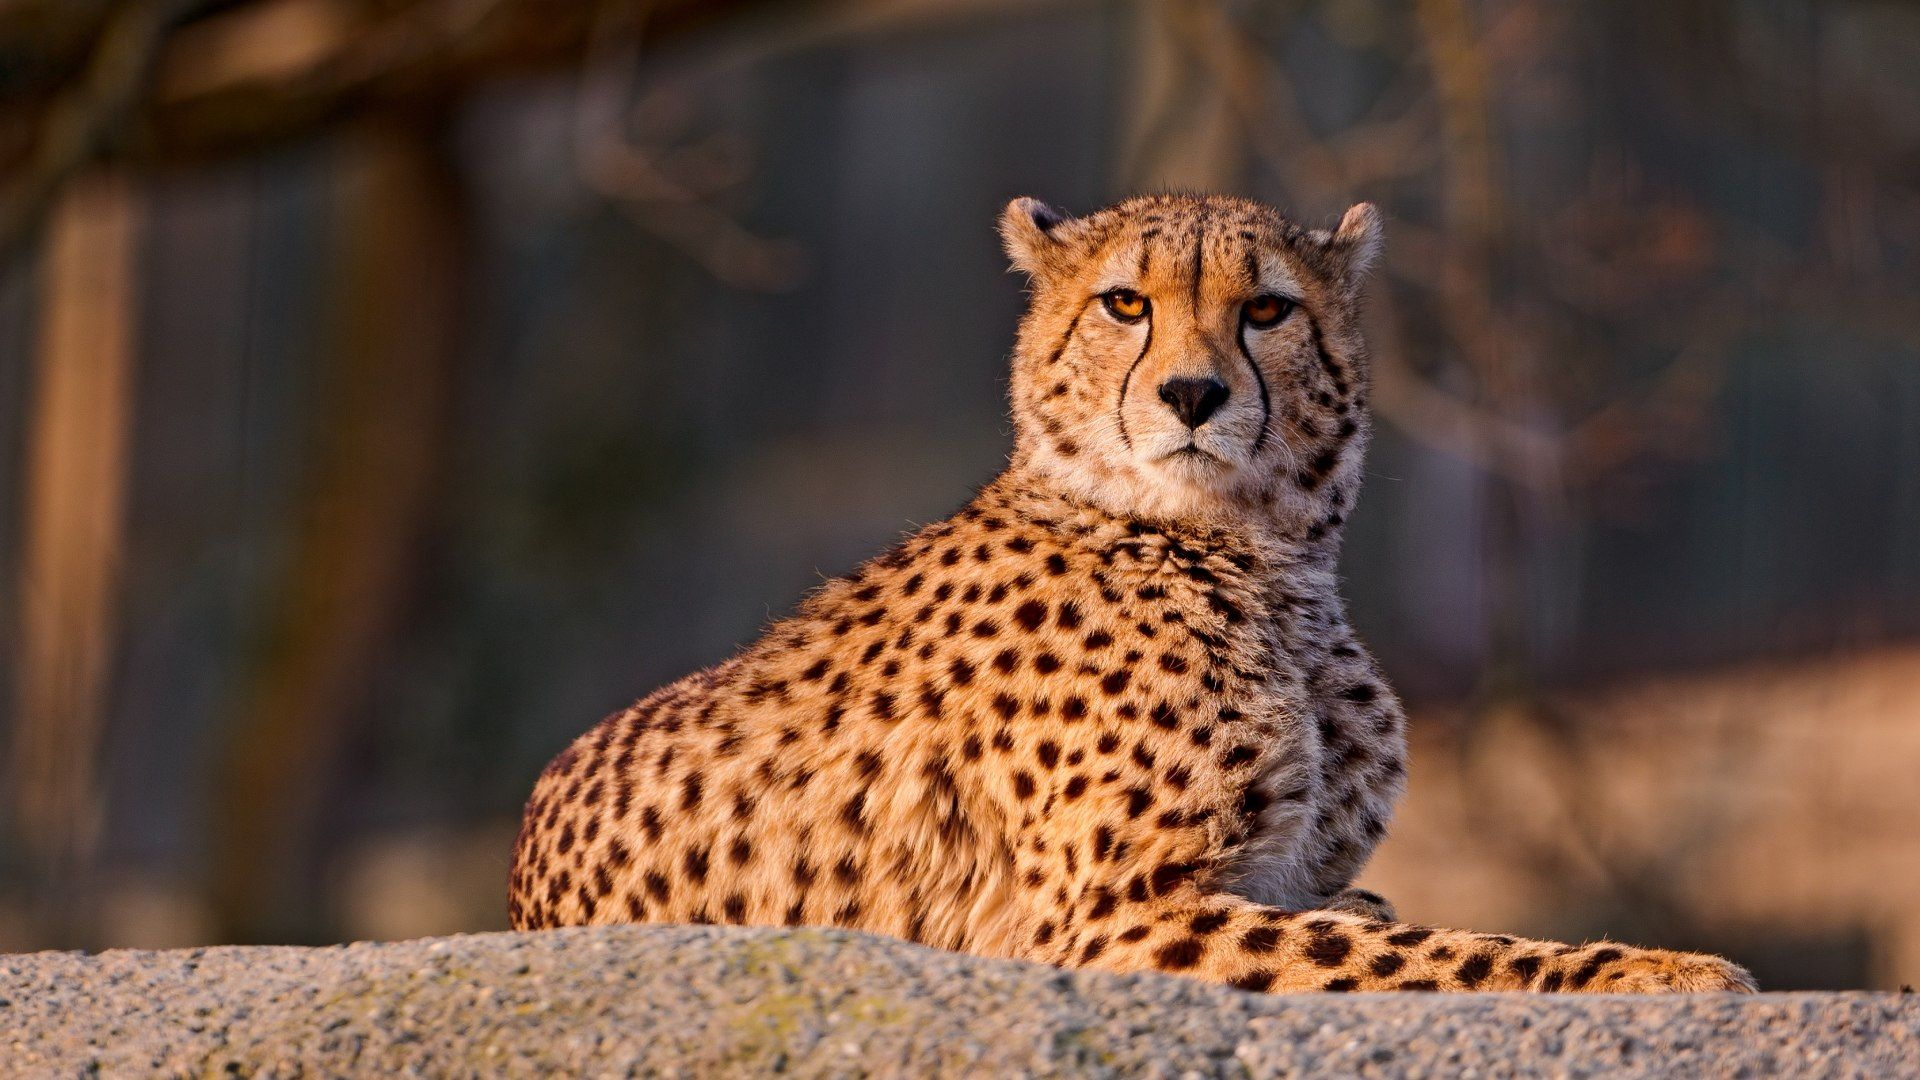 Spotted Cheetah